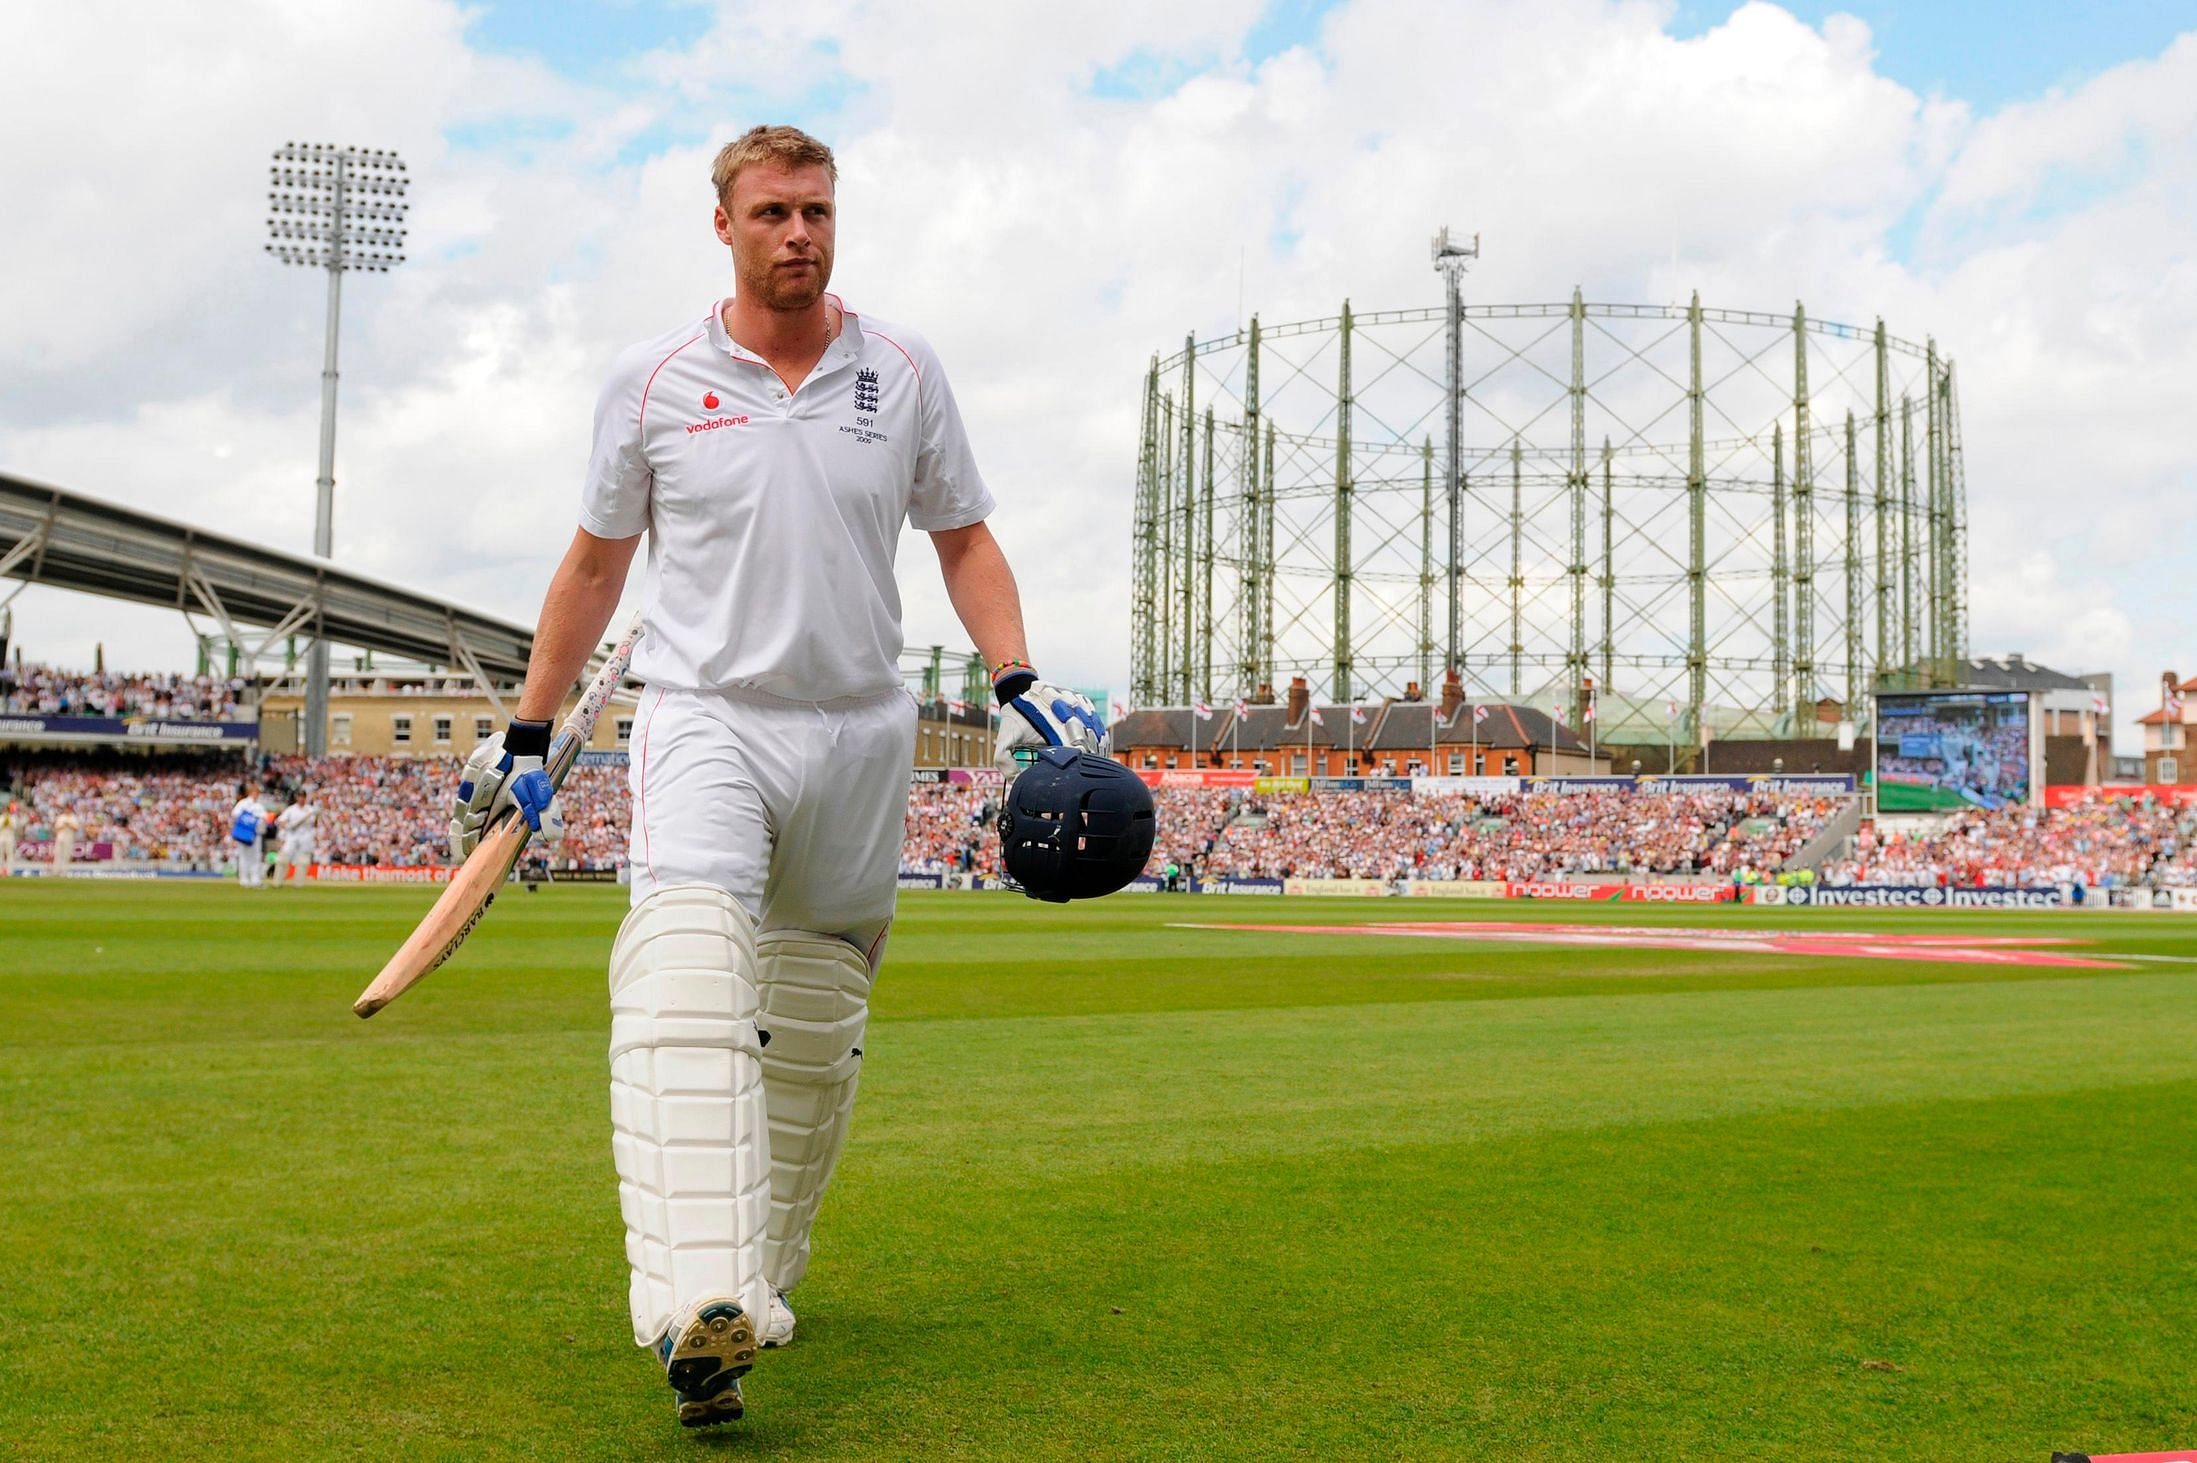 Andrew Flintoff's debut in International Cricket